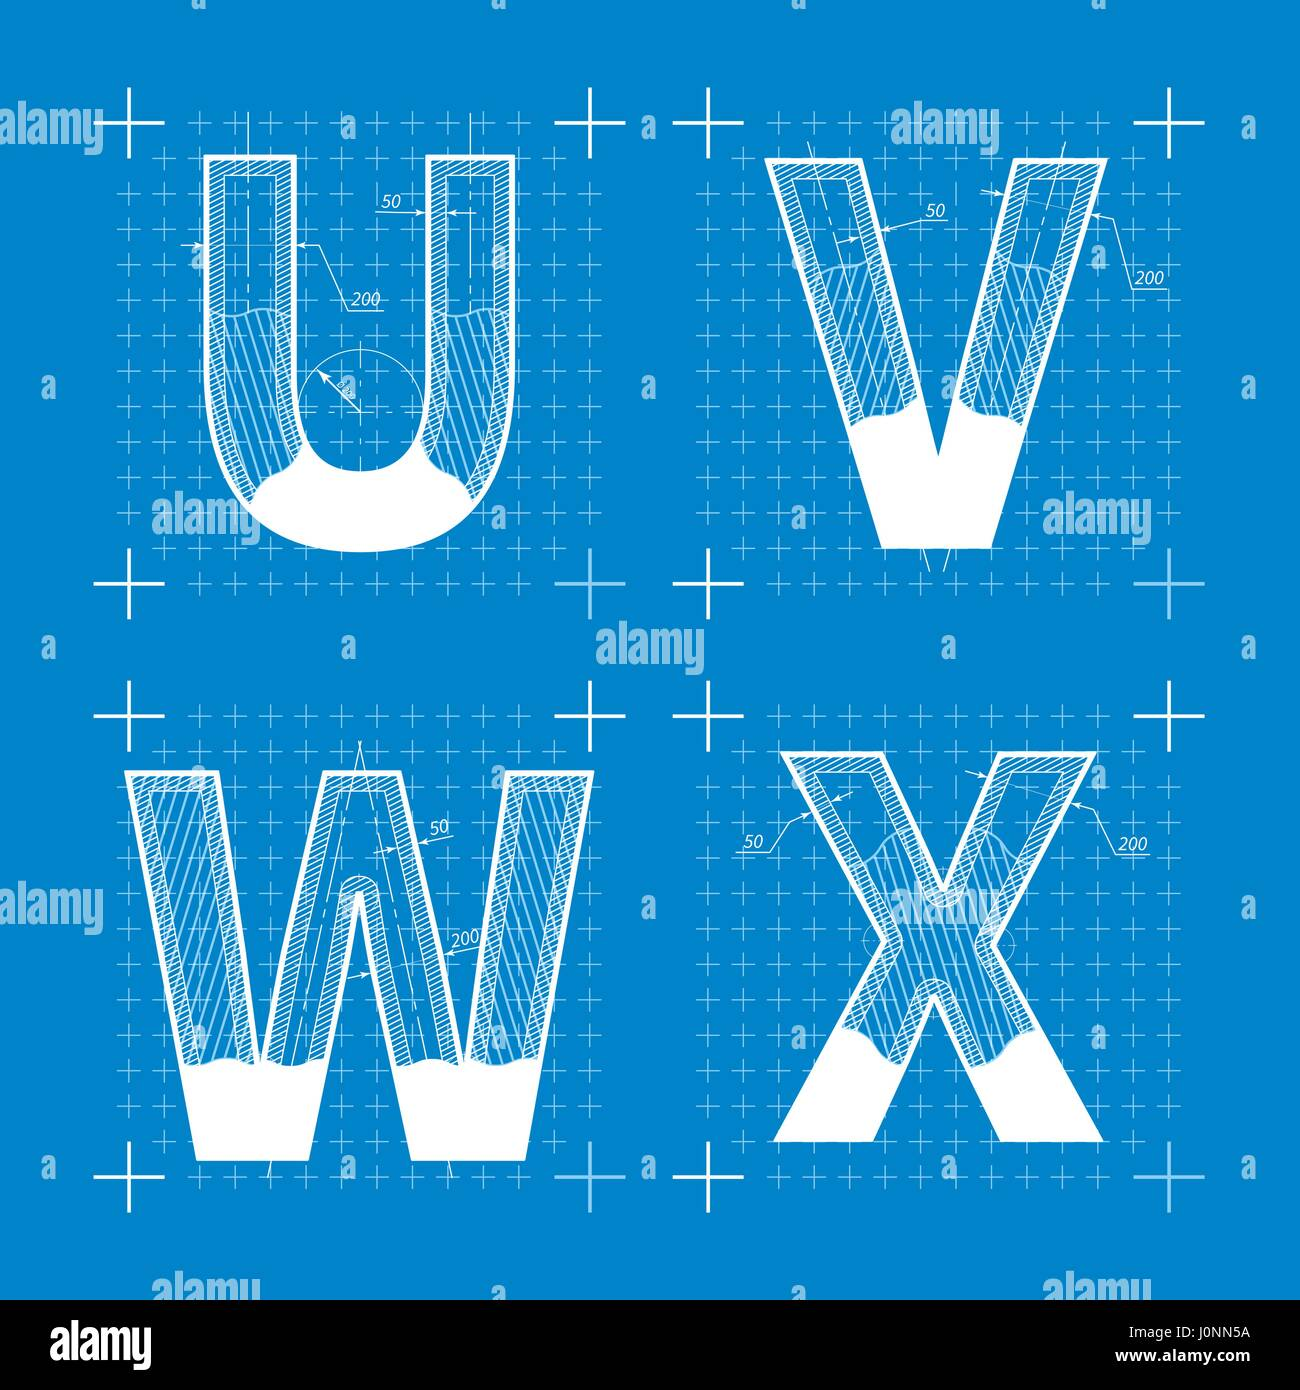 Construction sketches of u v w x letters blueprint style font stock construction sketches of u v w x letters blueprint style font malvernweather Images